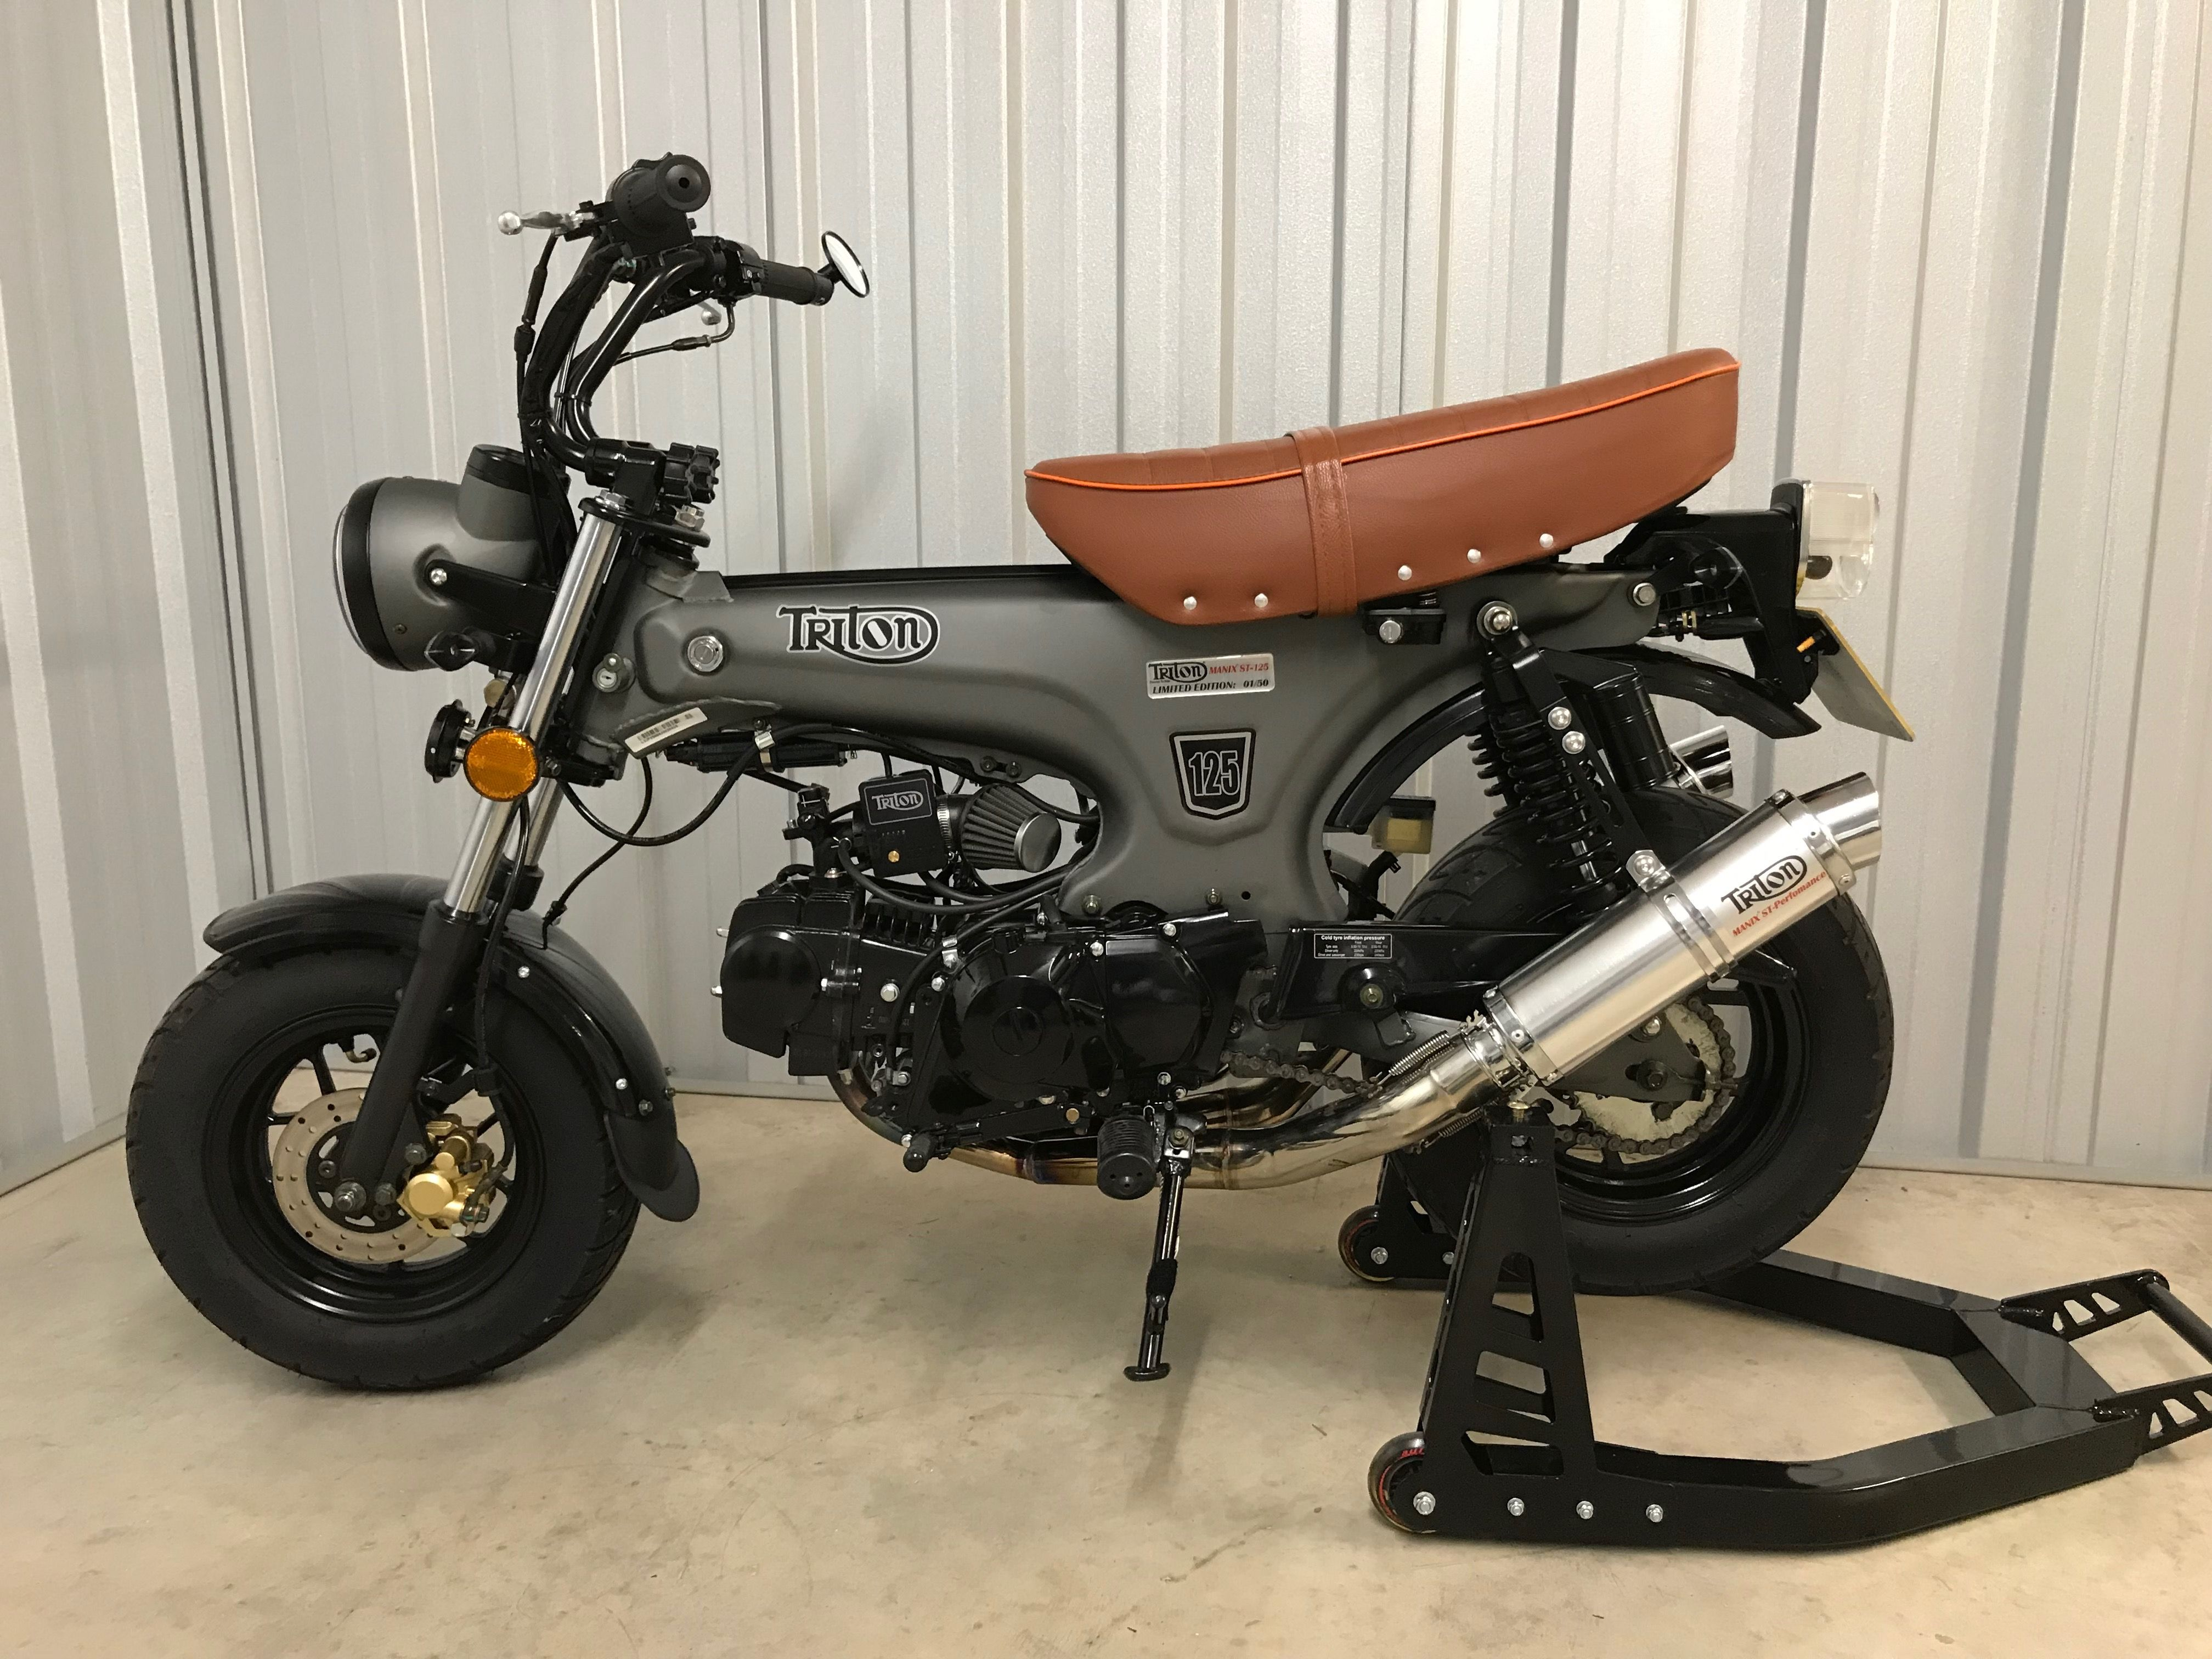 Pin By Triton Motorcycles On Cars And Motorcycles Cars And Motorcycles Motorcycle Vehicles